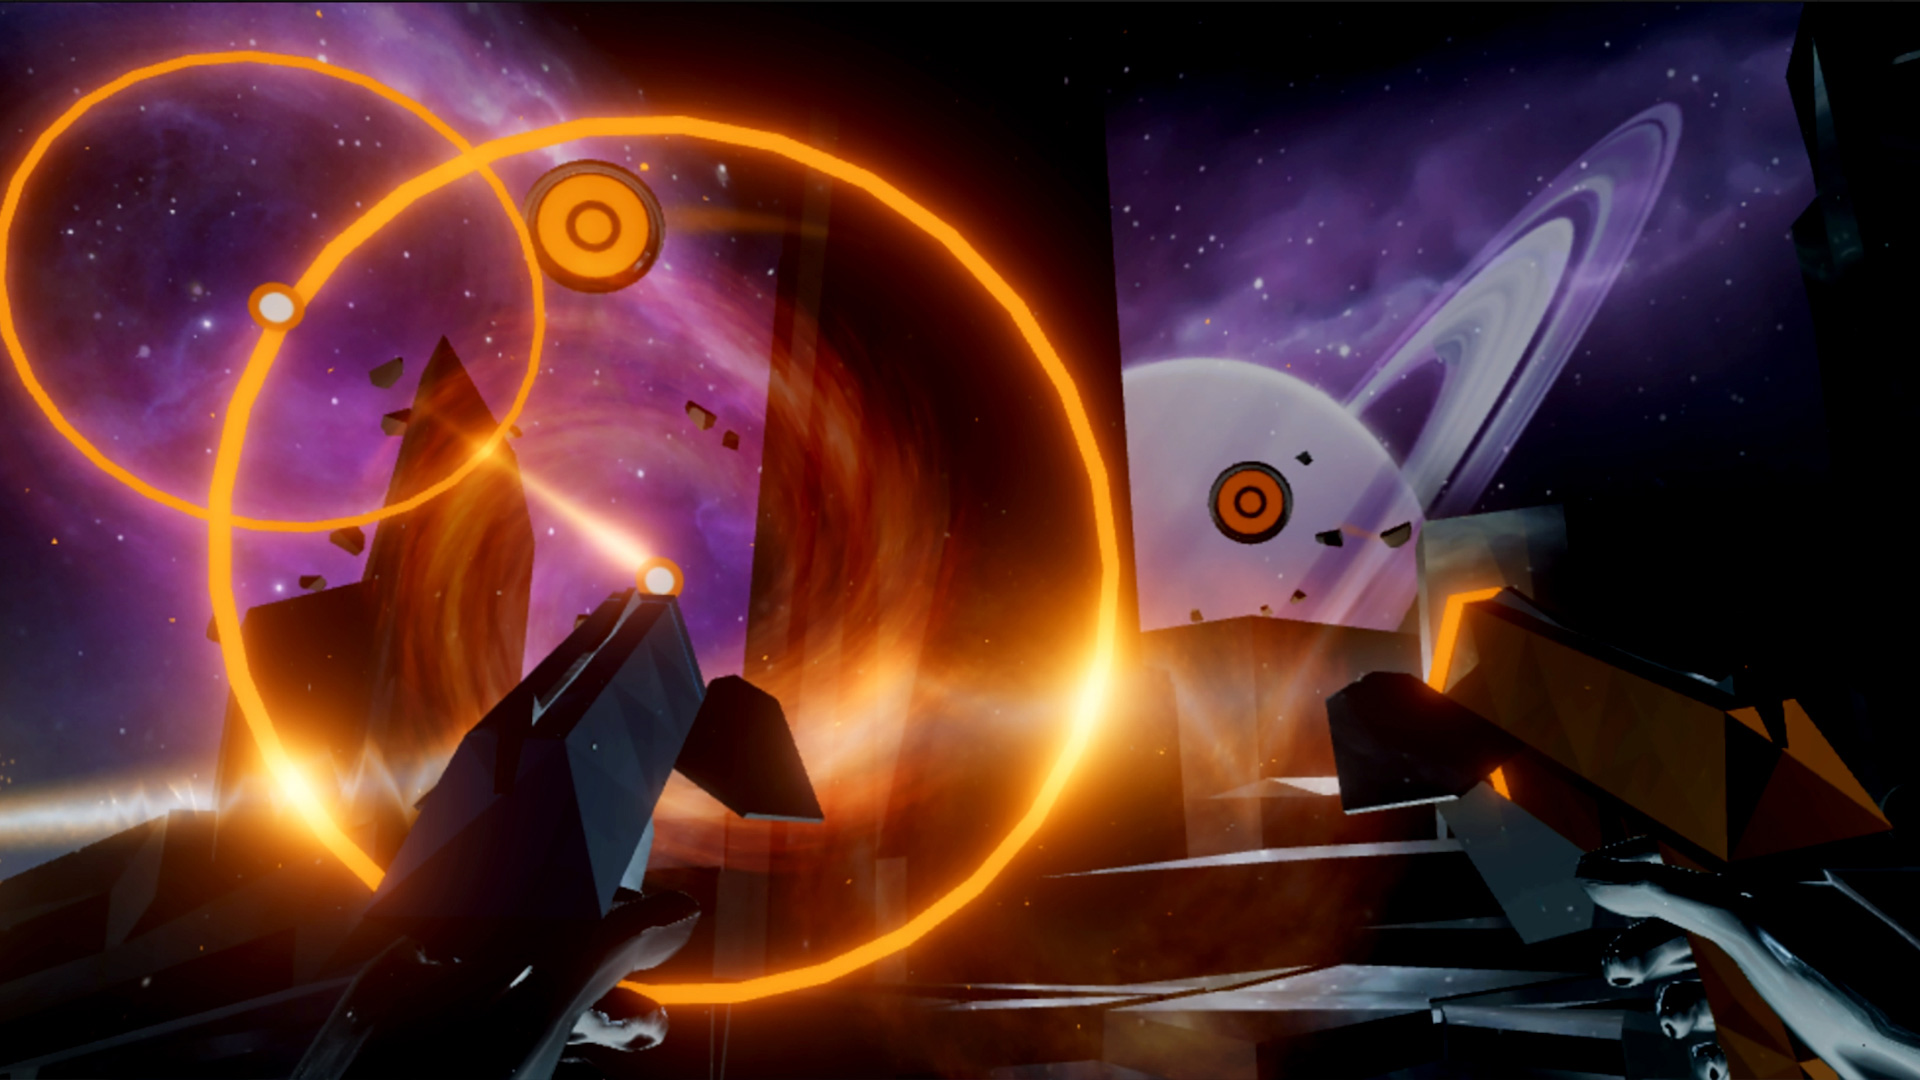 Harmonix has a potential hit on its hands with Audica screenshot